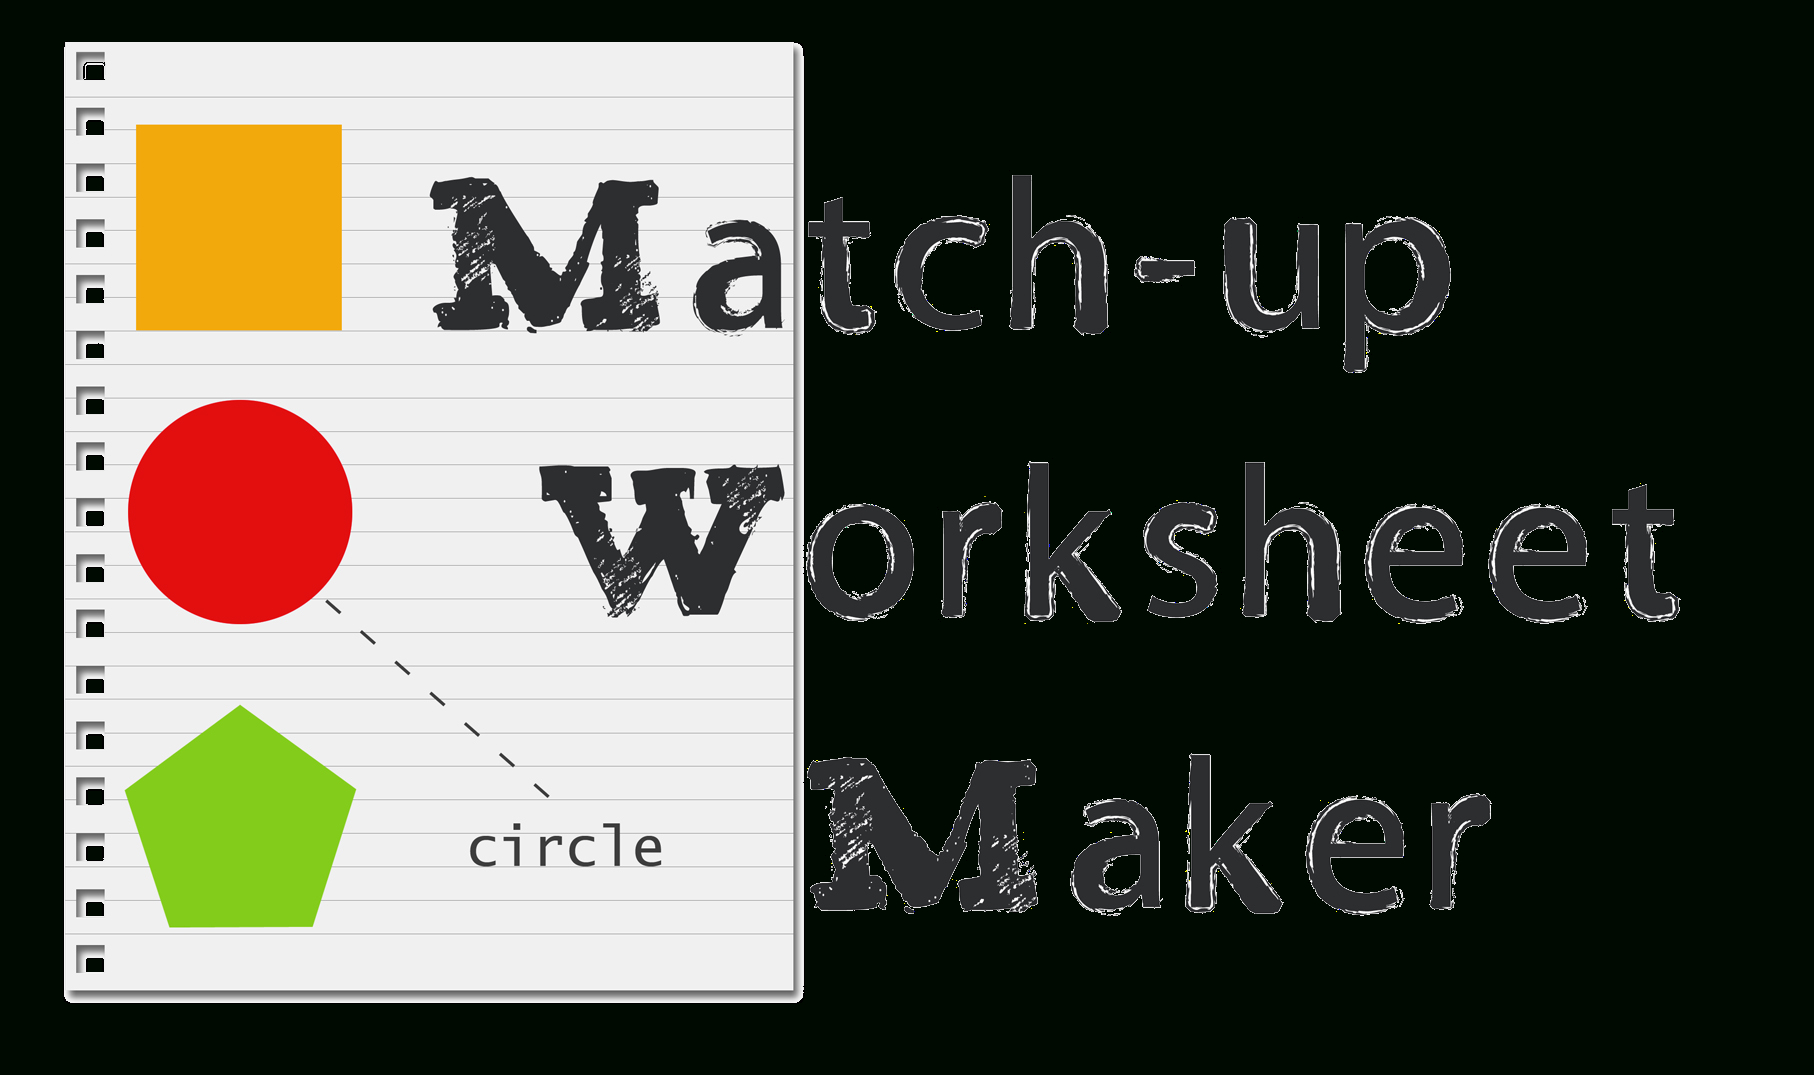 Matching Worksheet Maker: Create Custom Printable Worksheets | Printable Worksheet Maker